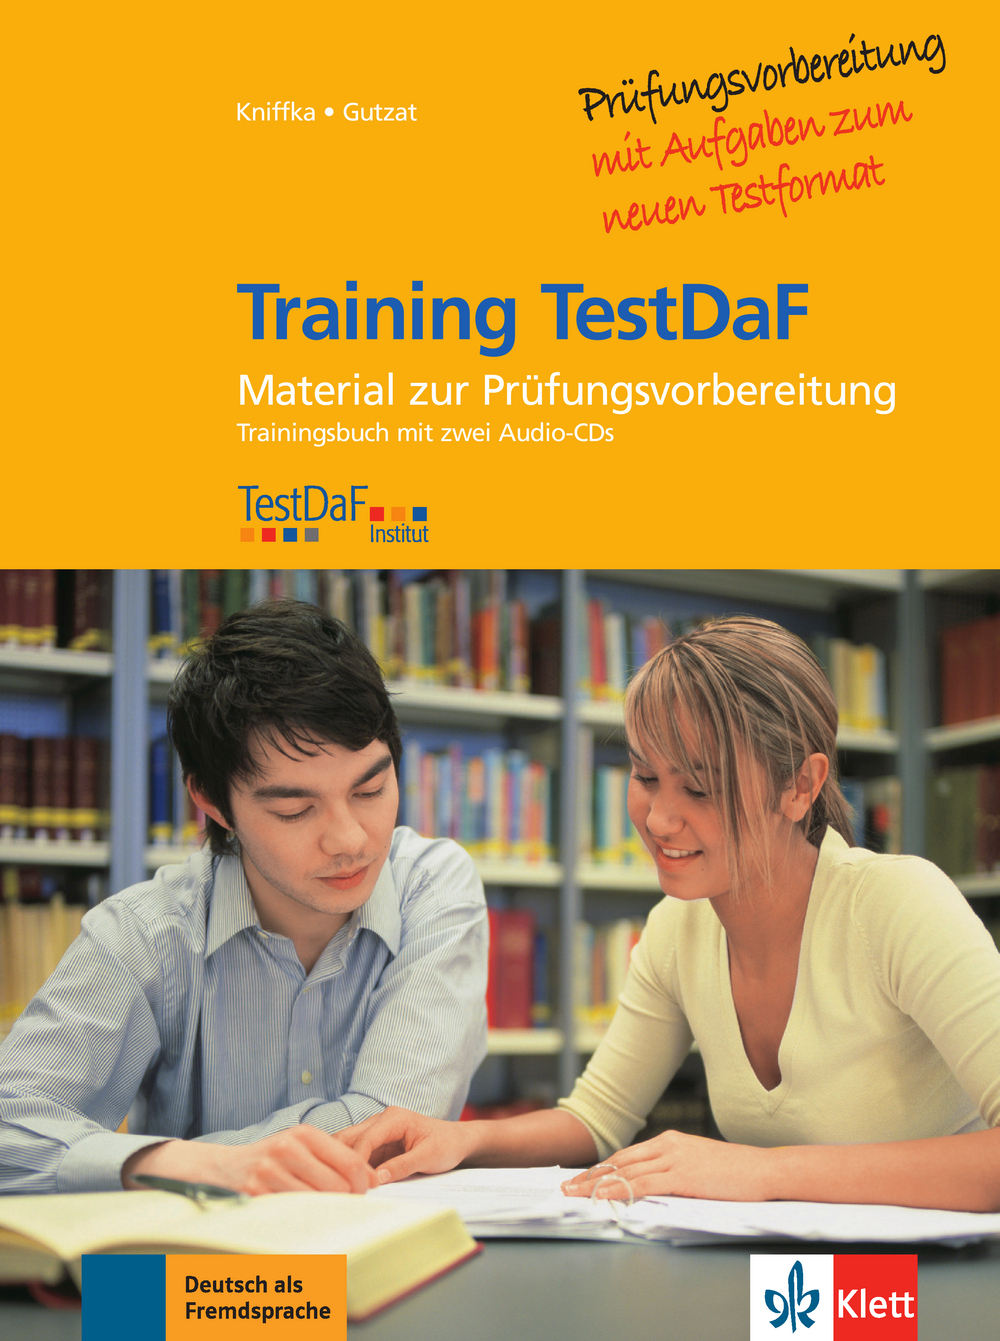 Training TestDaF - Trainingsbuch mit 2 Audio-CDs